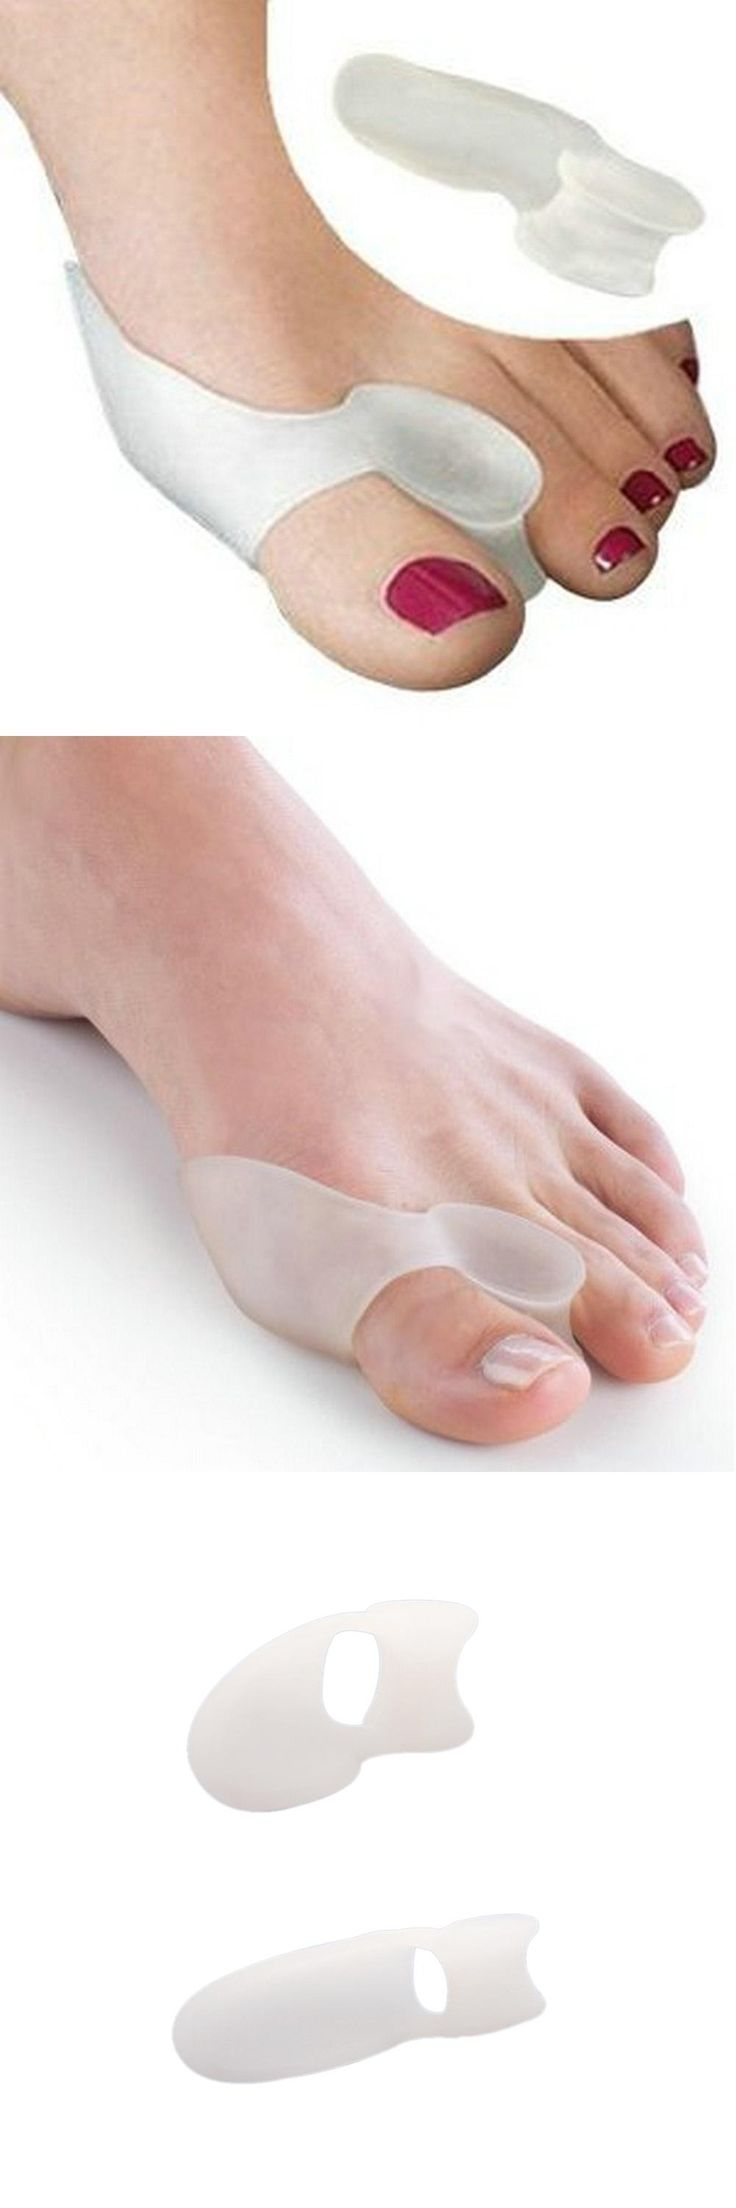 Squishy lump on top of foot -  Visit To Buy New Eases Foot Pain Hallux Valgus Bicyclic Thumb Orthopedic Daily Silicone